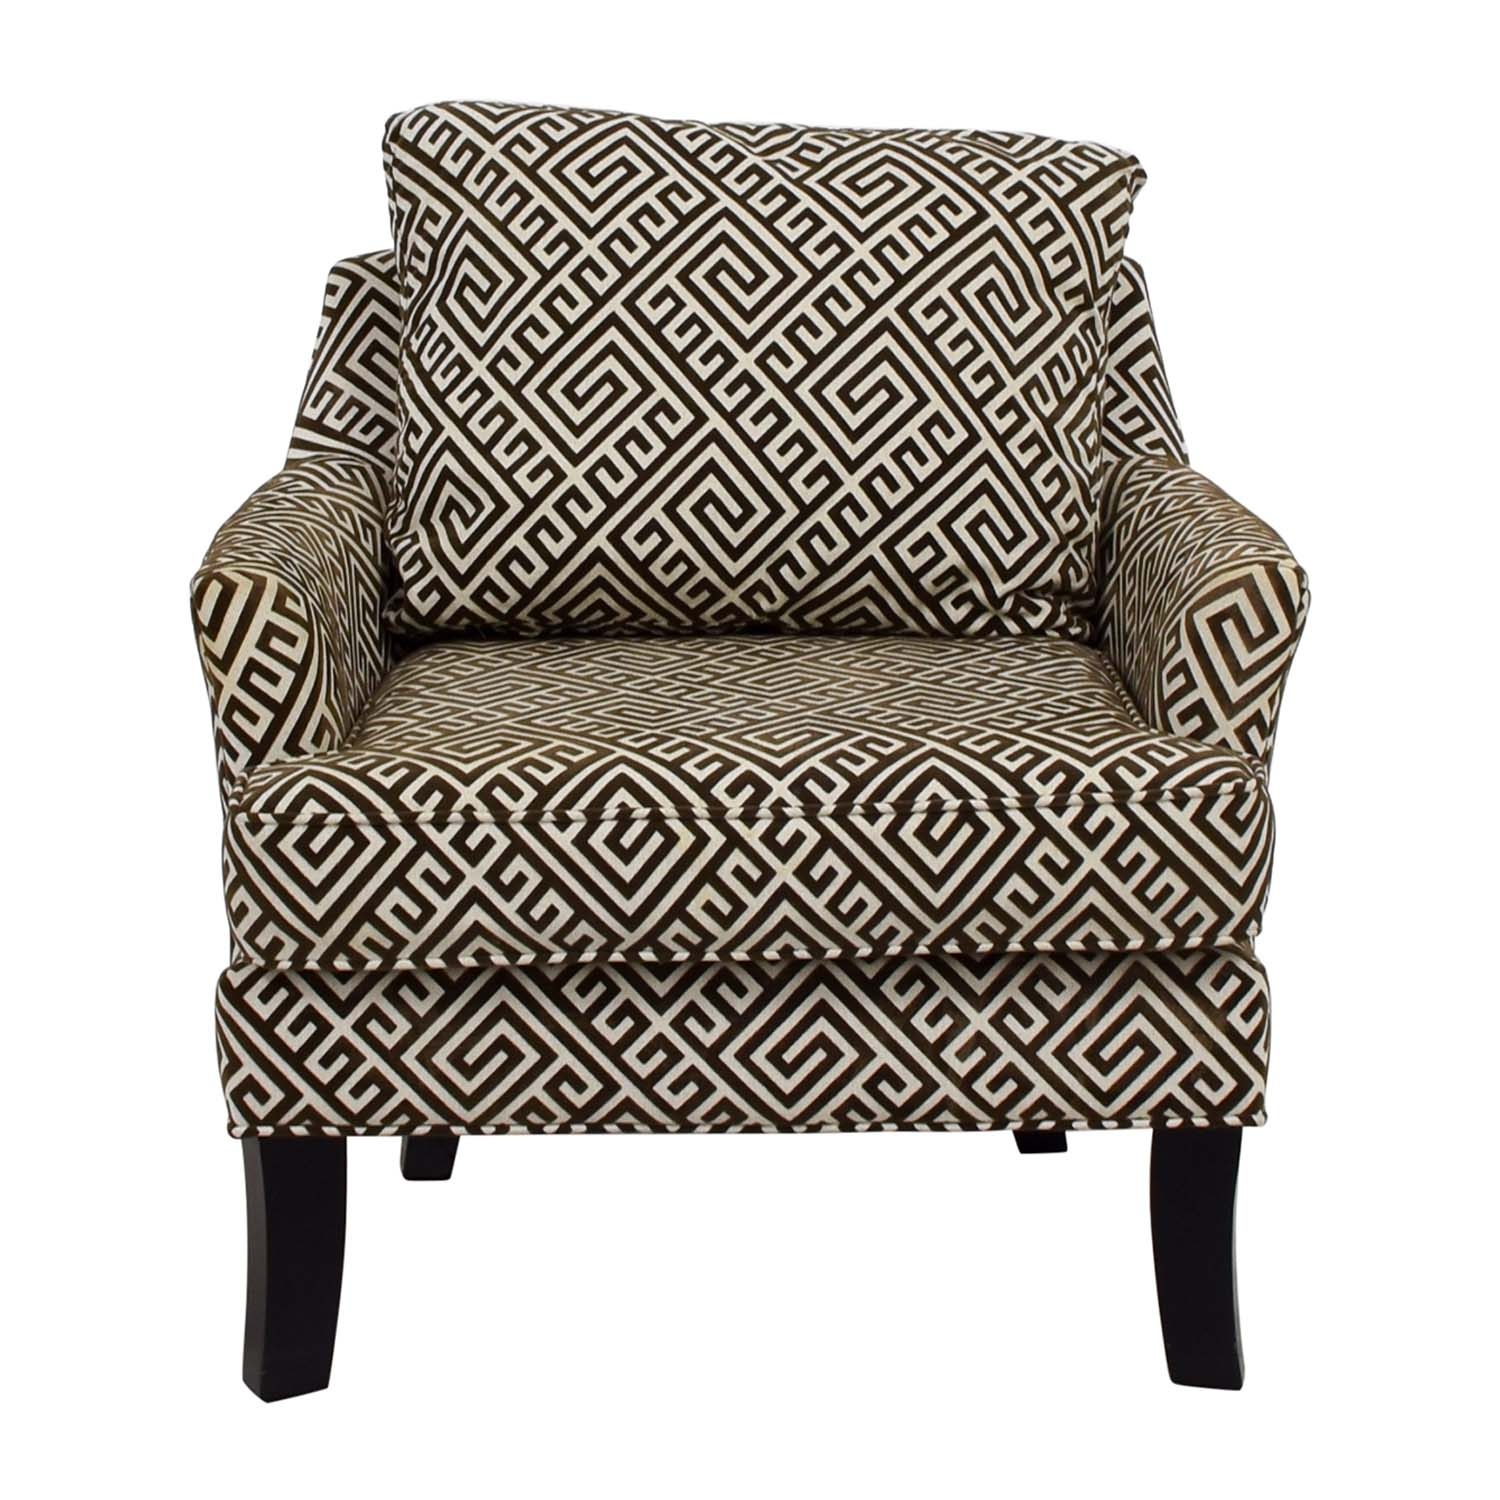 Raymour & Flanigan Raymour & Flanigan Brown and White Accent Arm Chair coupon